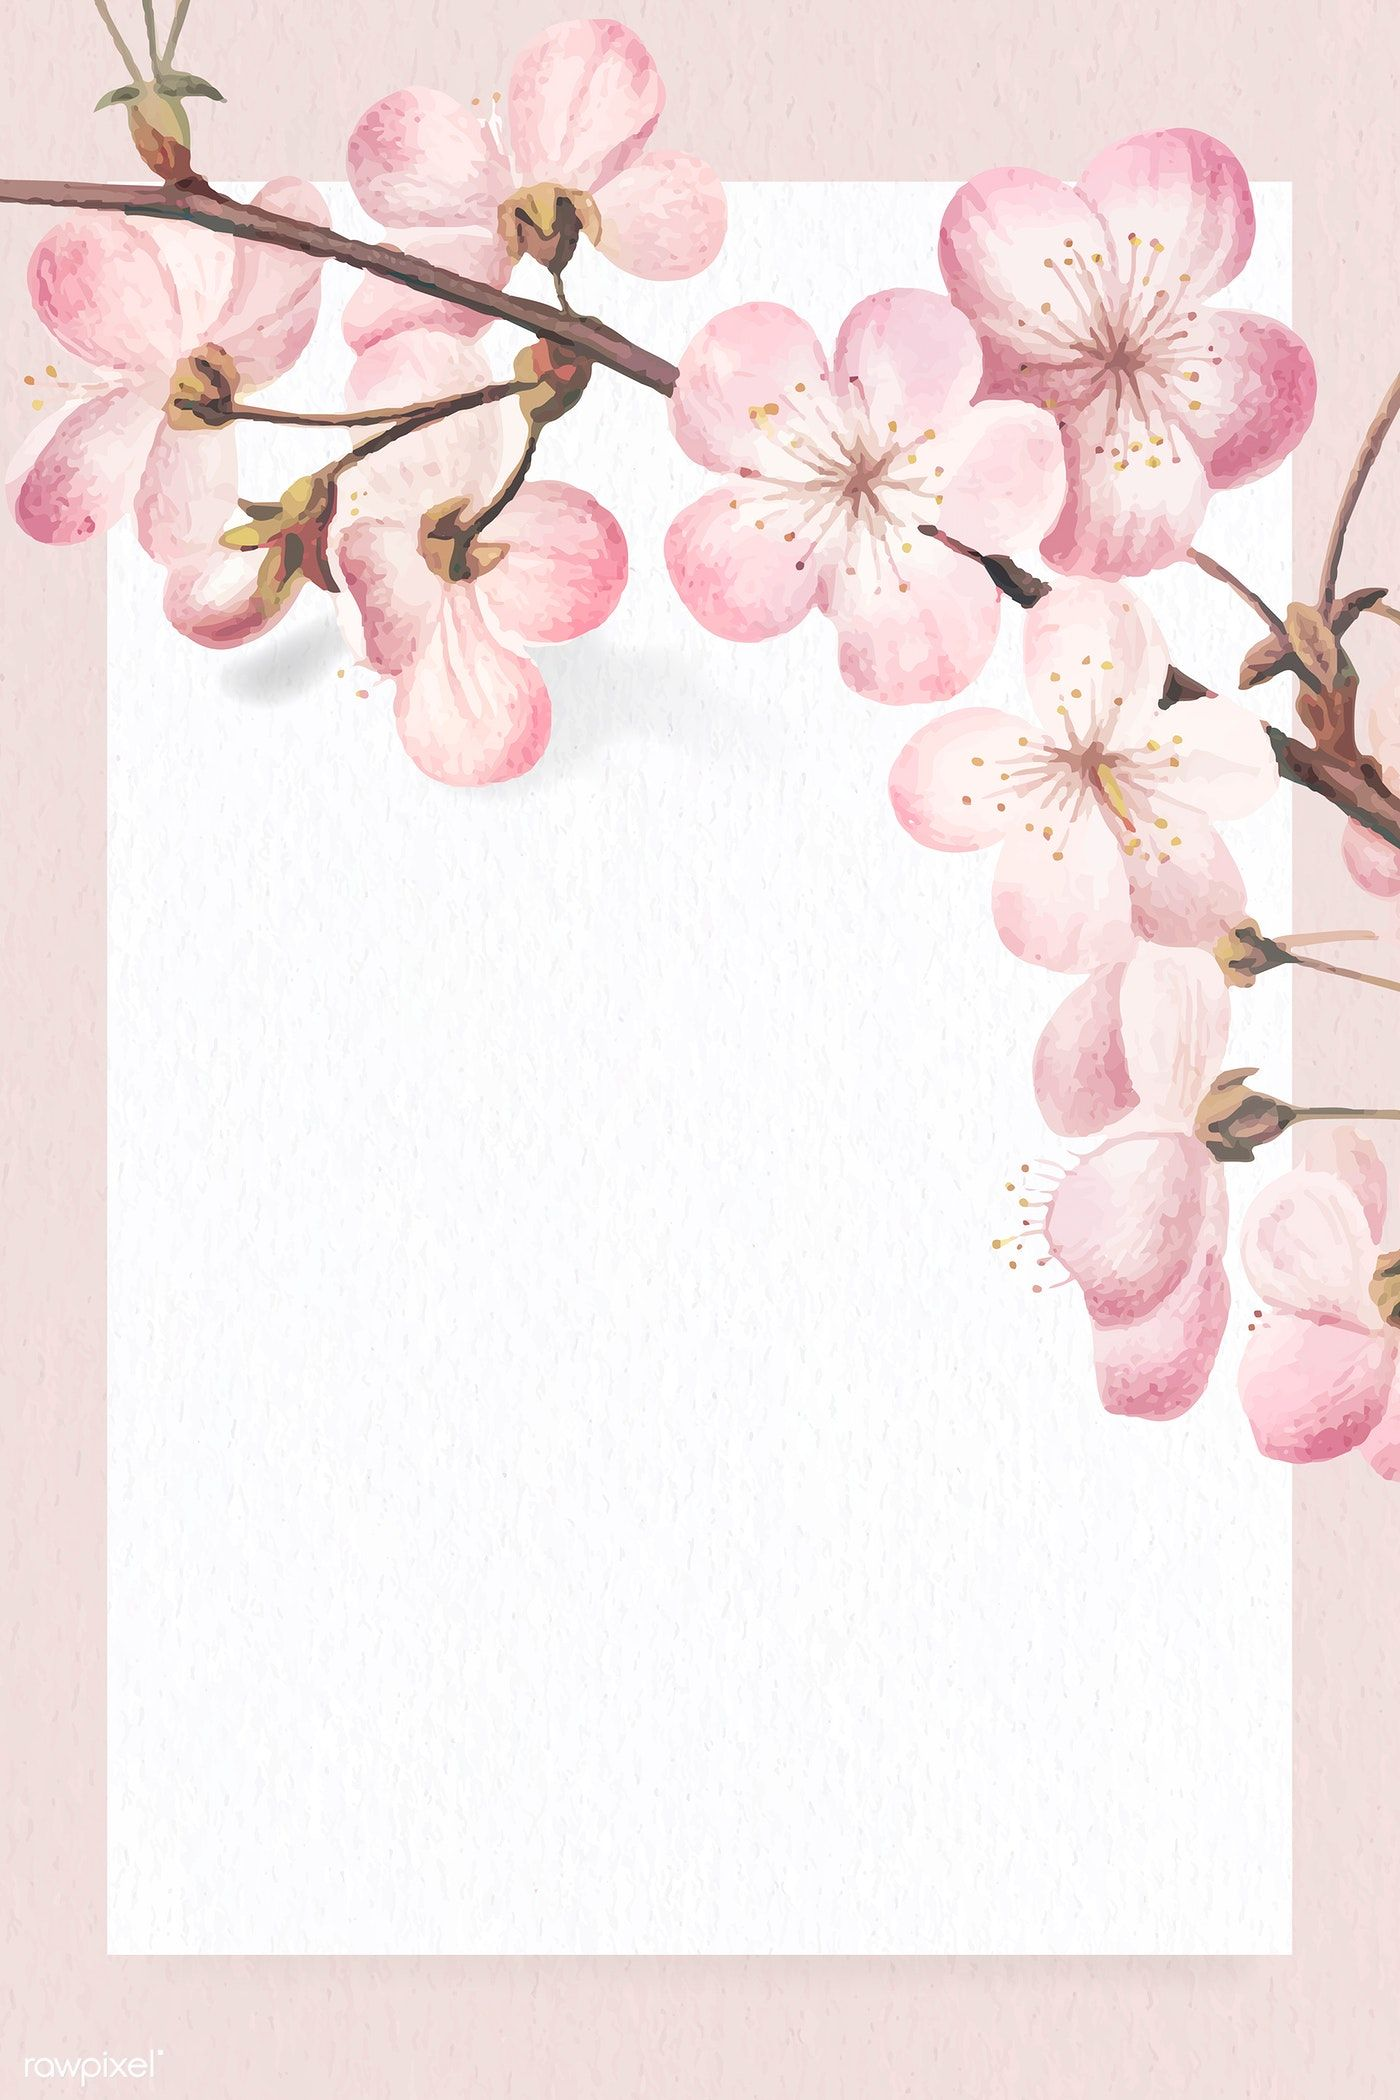 Rectangle Cherry Blossom Frame Vector Free Image By Rawpixel Com Wan Cherryblossom Pink Cherry Blossom Vector Flower Illustration Pink Flower Painting